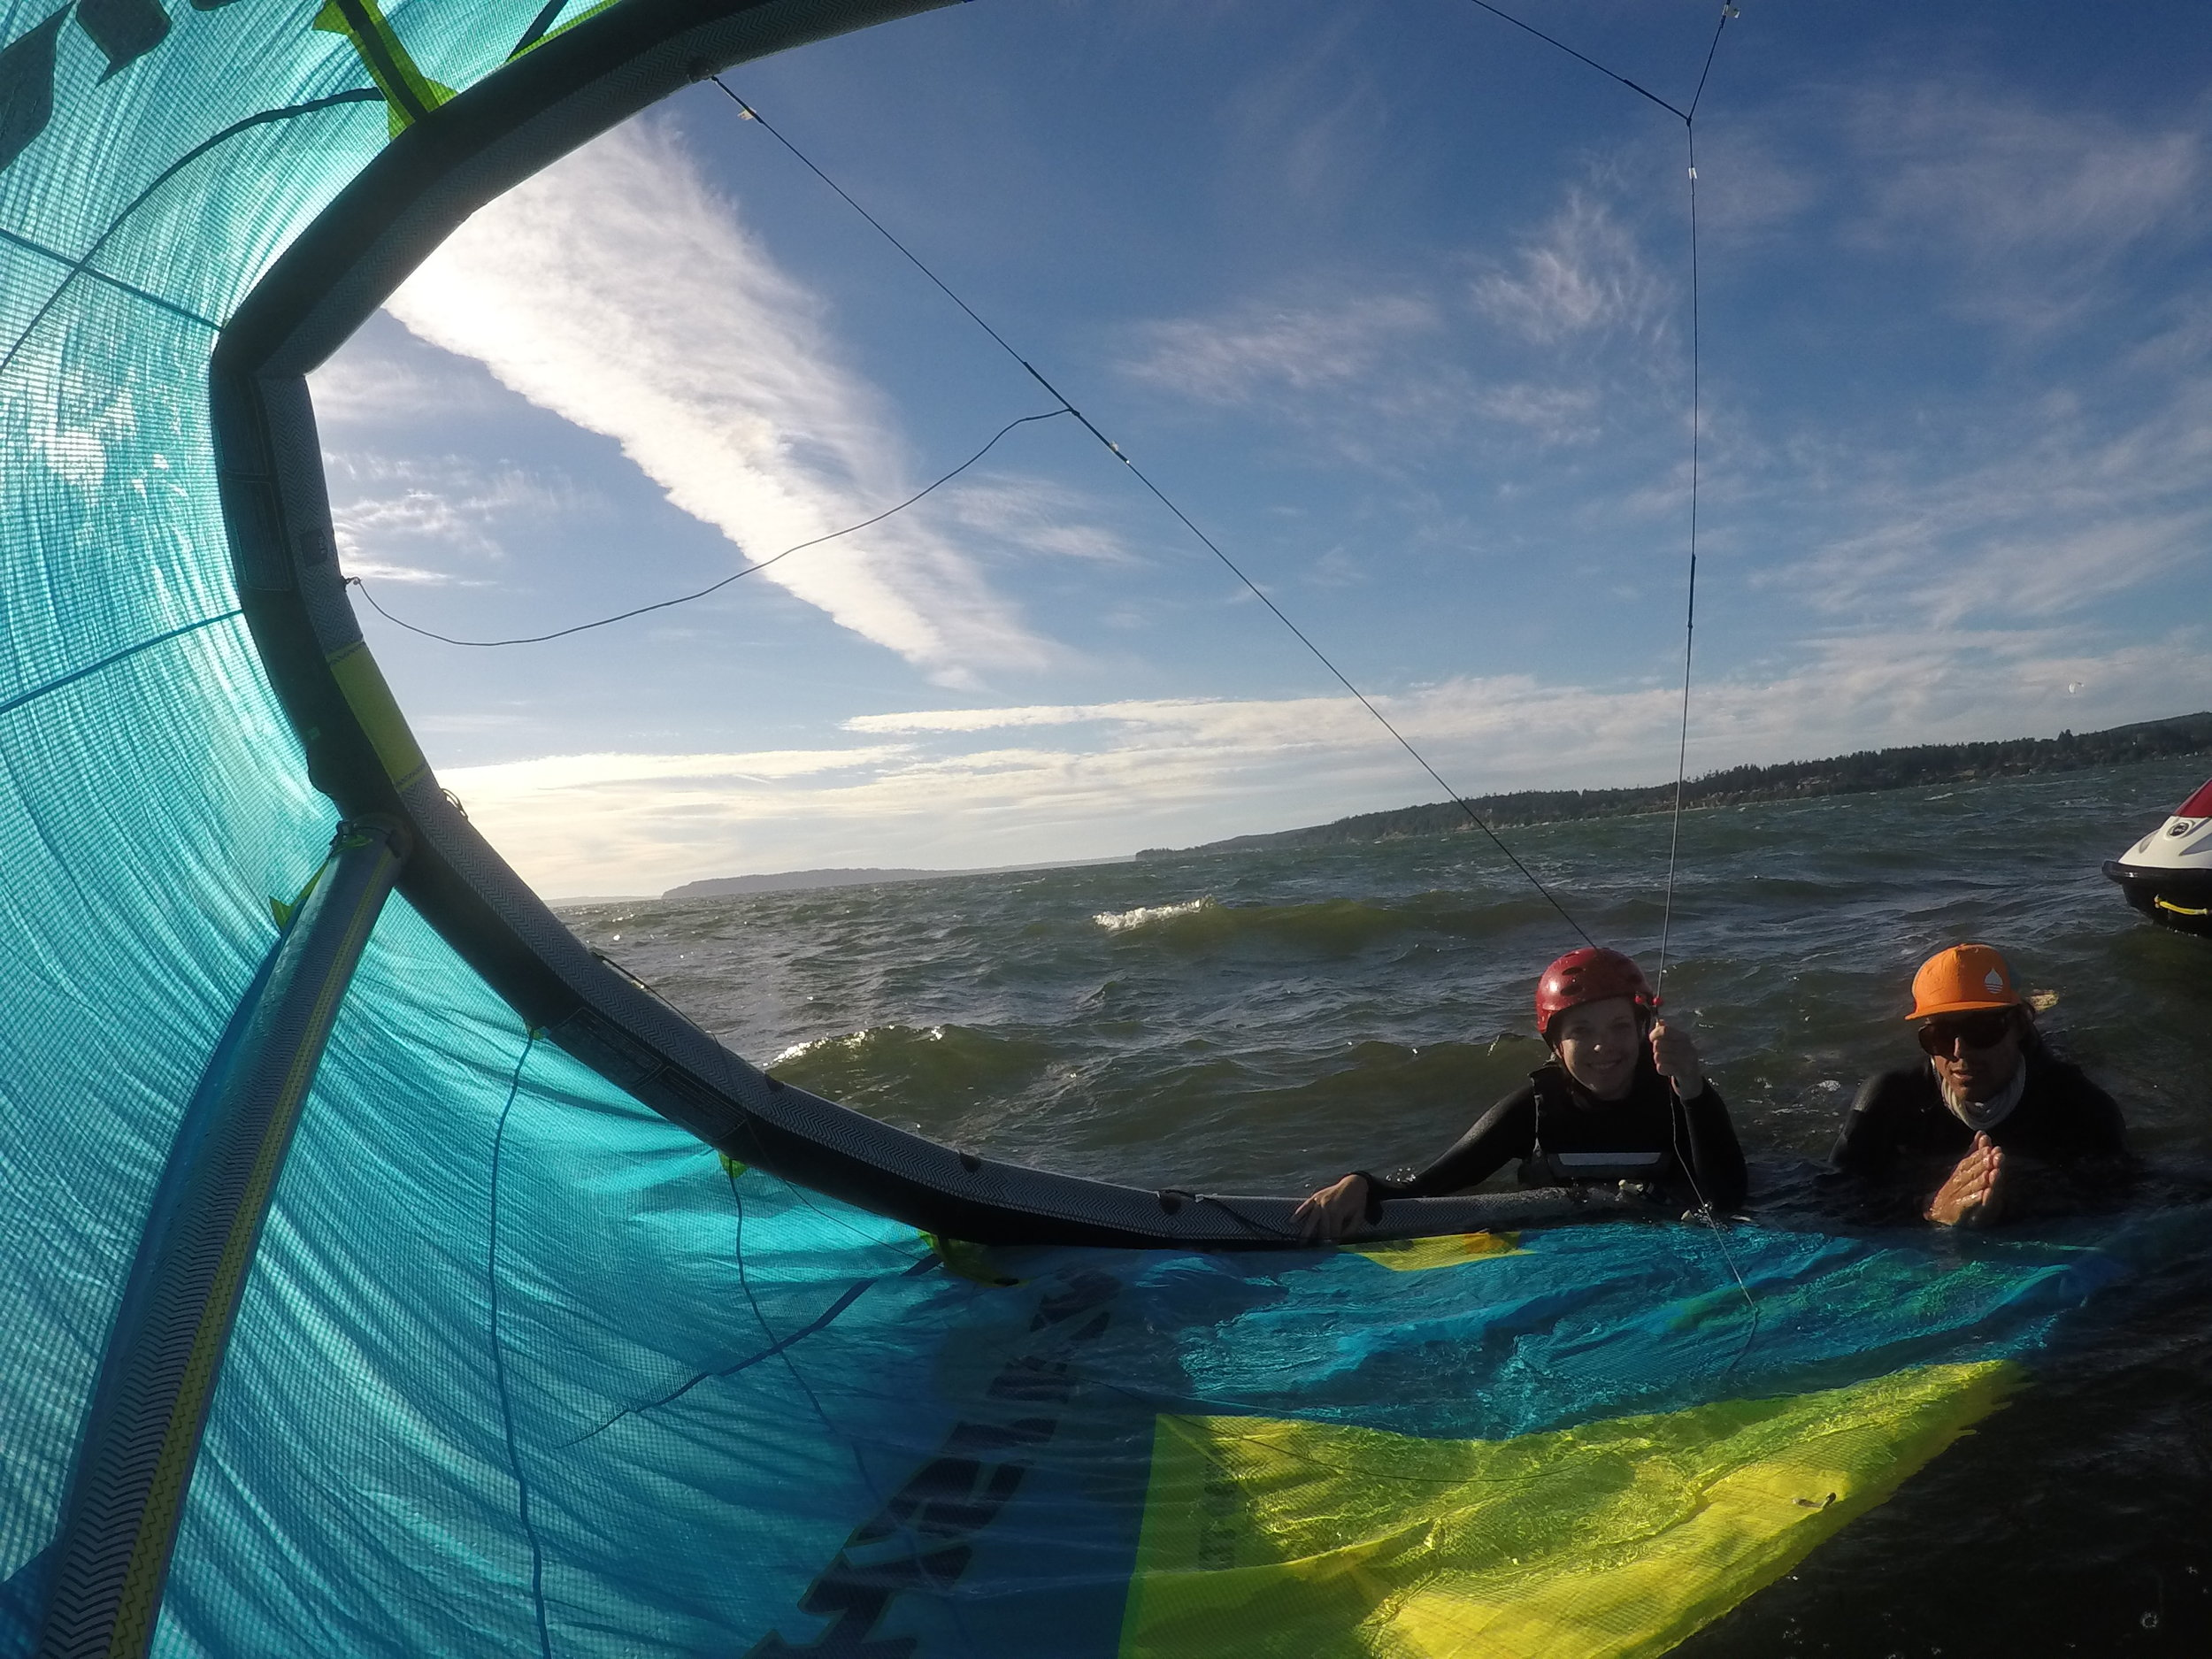 New Kiteboarders learn safety skills to be independent riders themselves one day